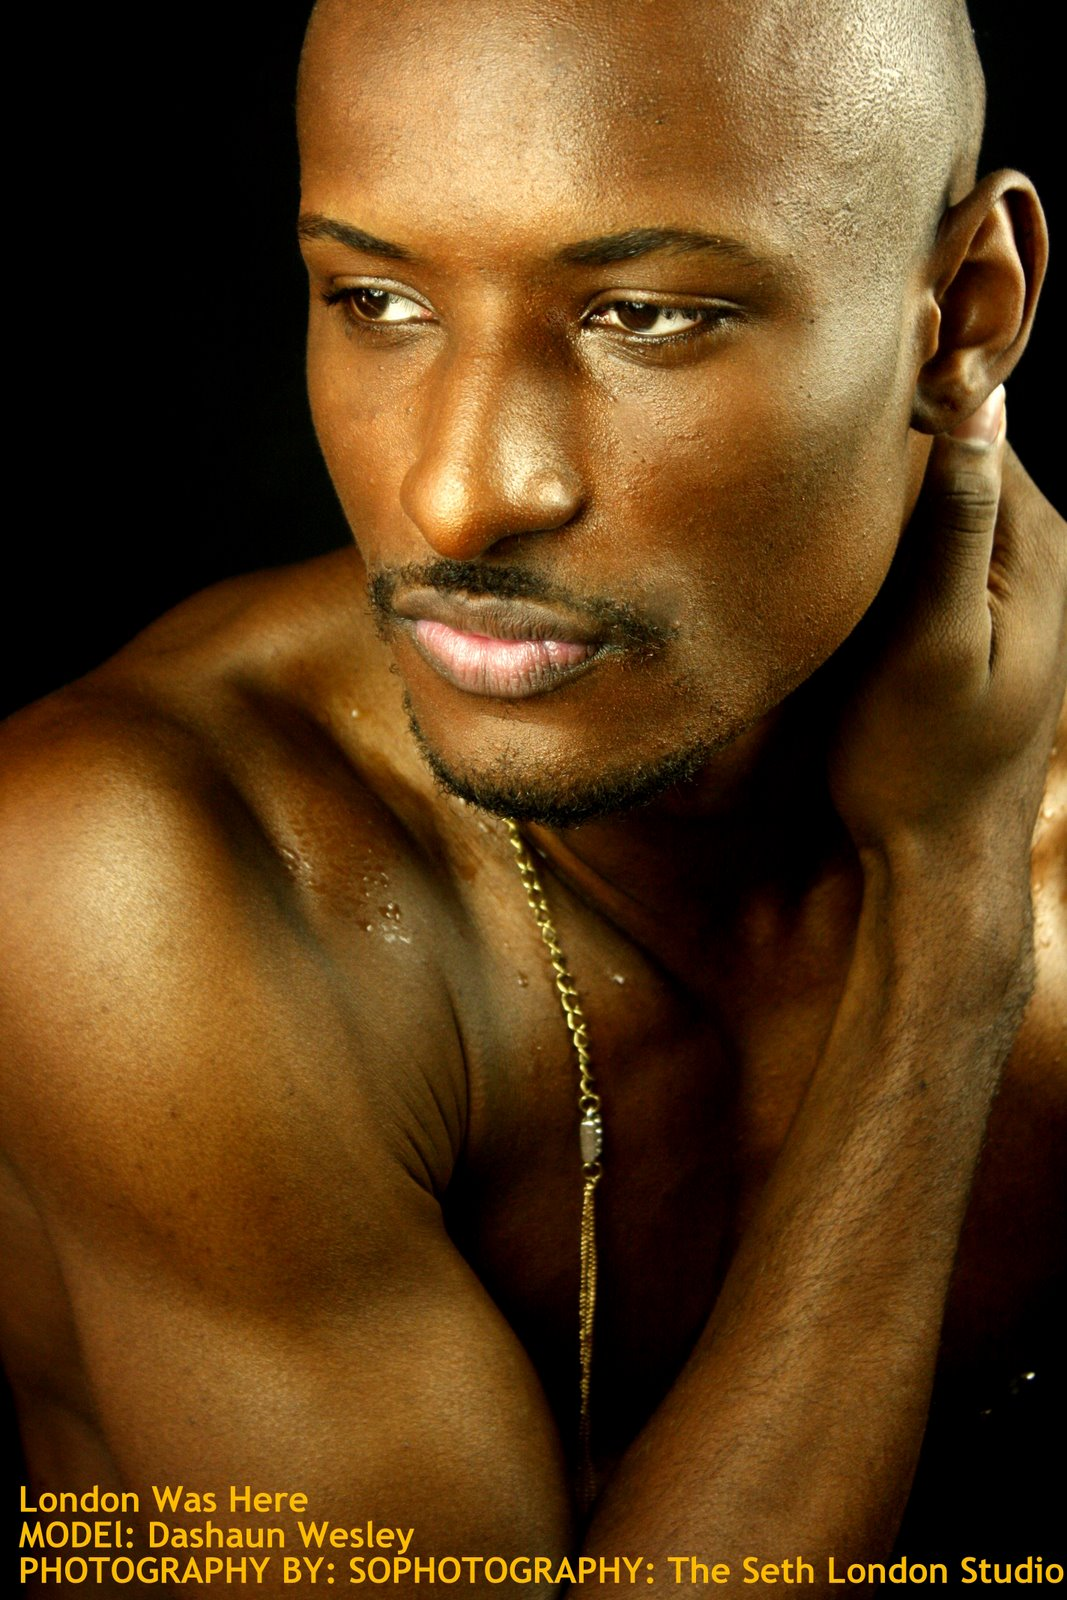 MODEl: Dashaun Wesley PHOTOGRAPHY BY: SOPHOTOGRAPHY: The Seth London Studio - d_MG_8672